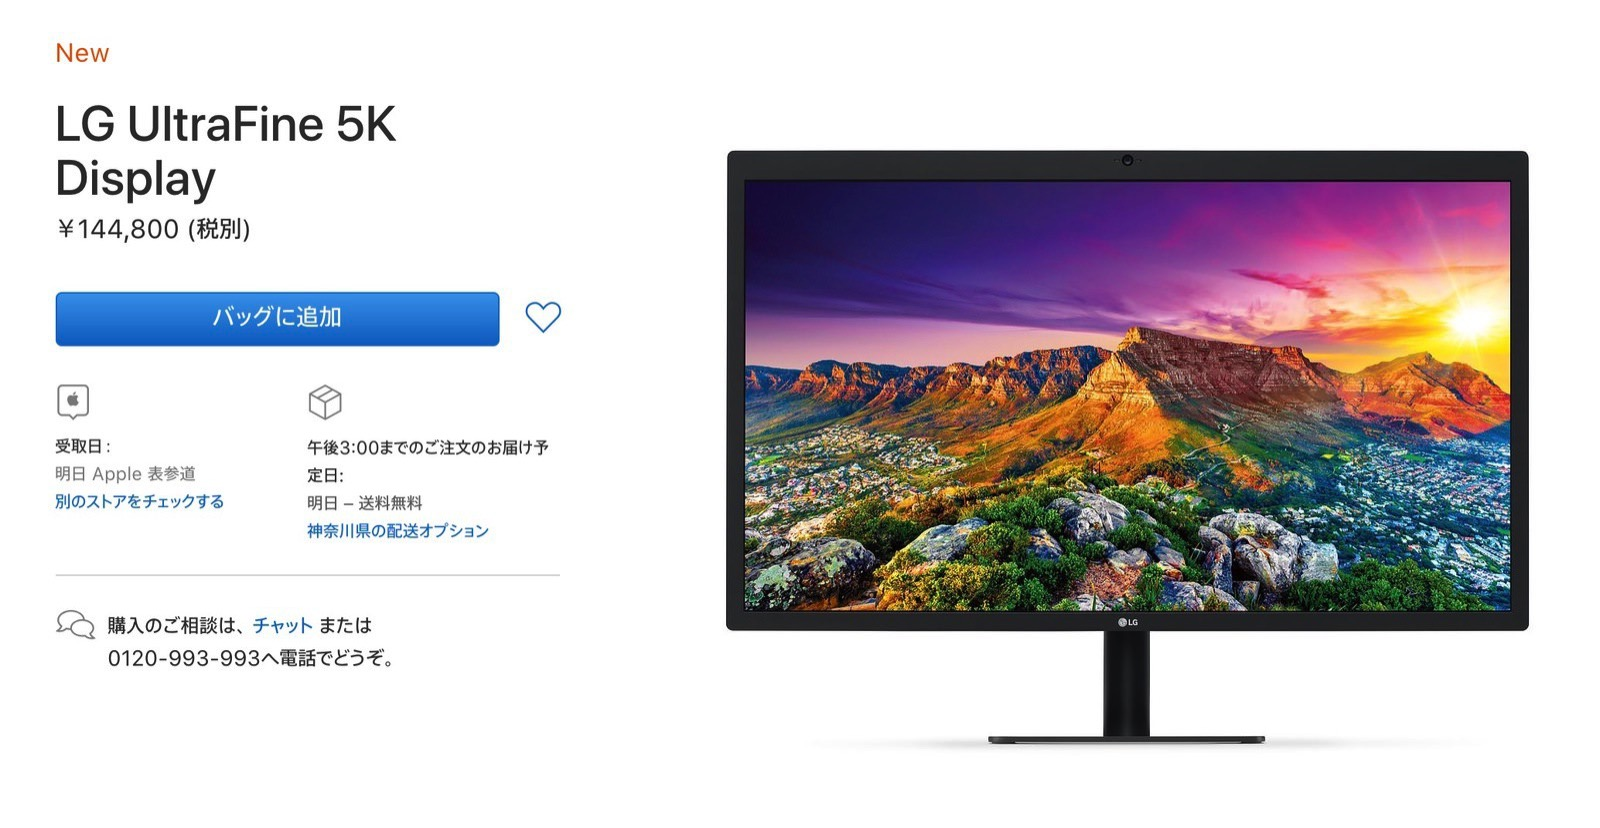 LG  UltraFine 5K Display 2019 01